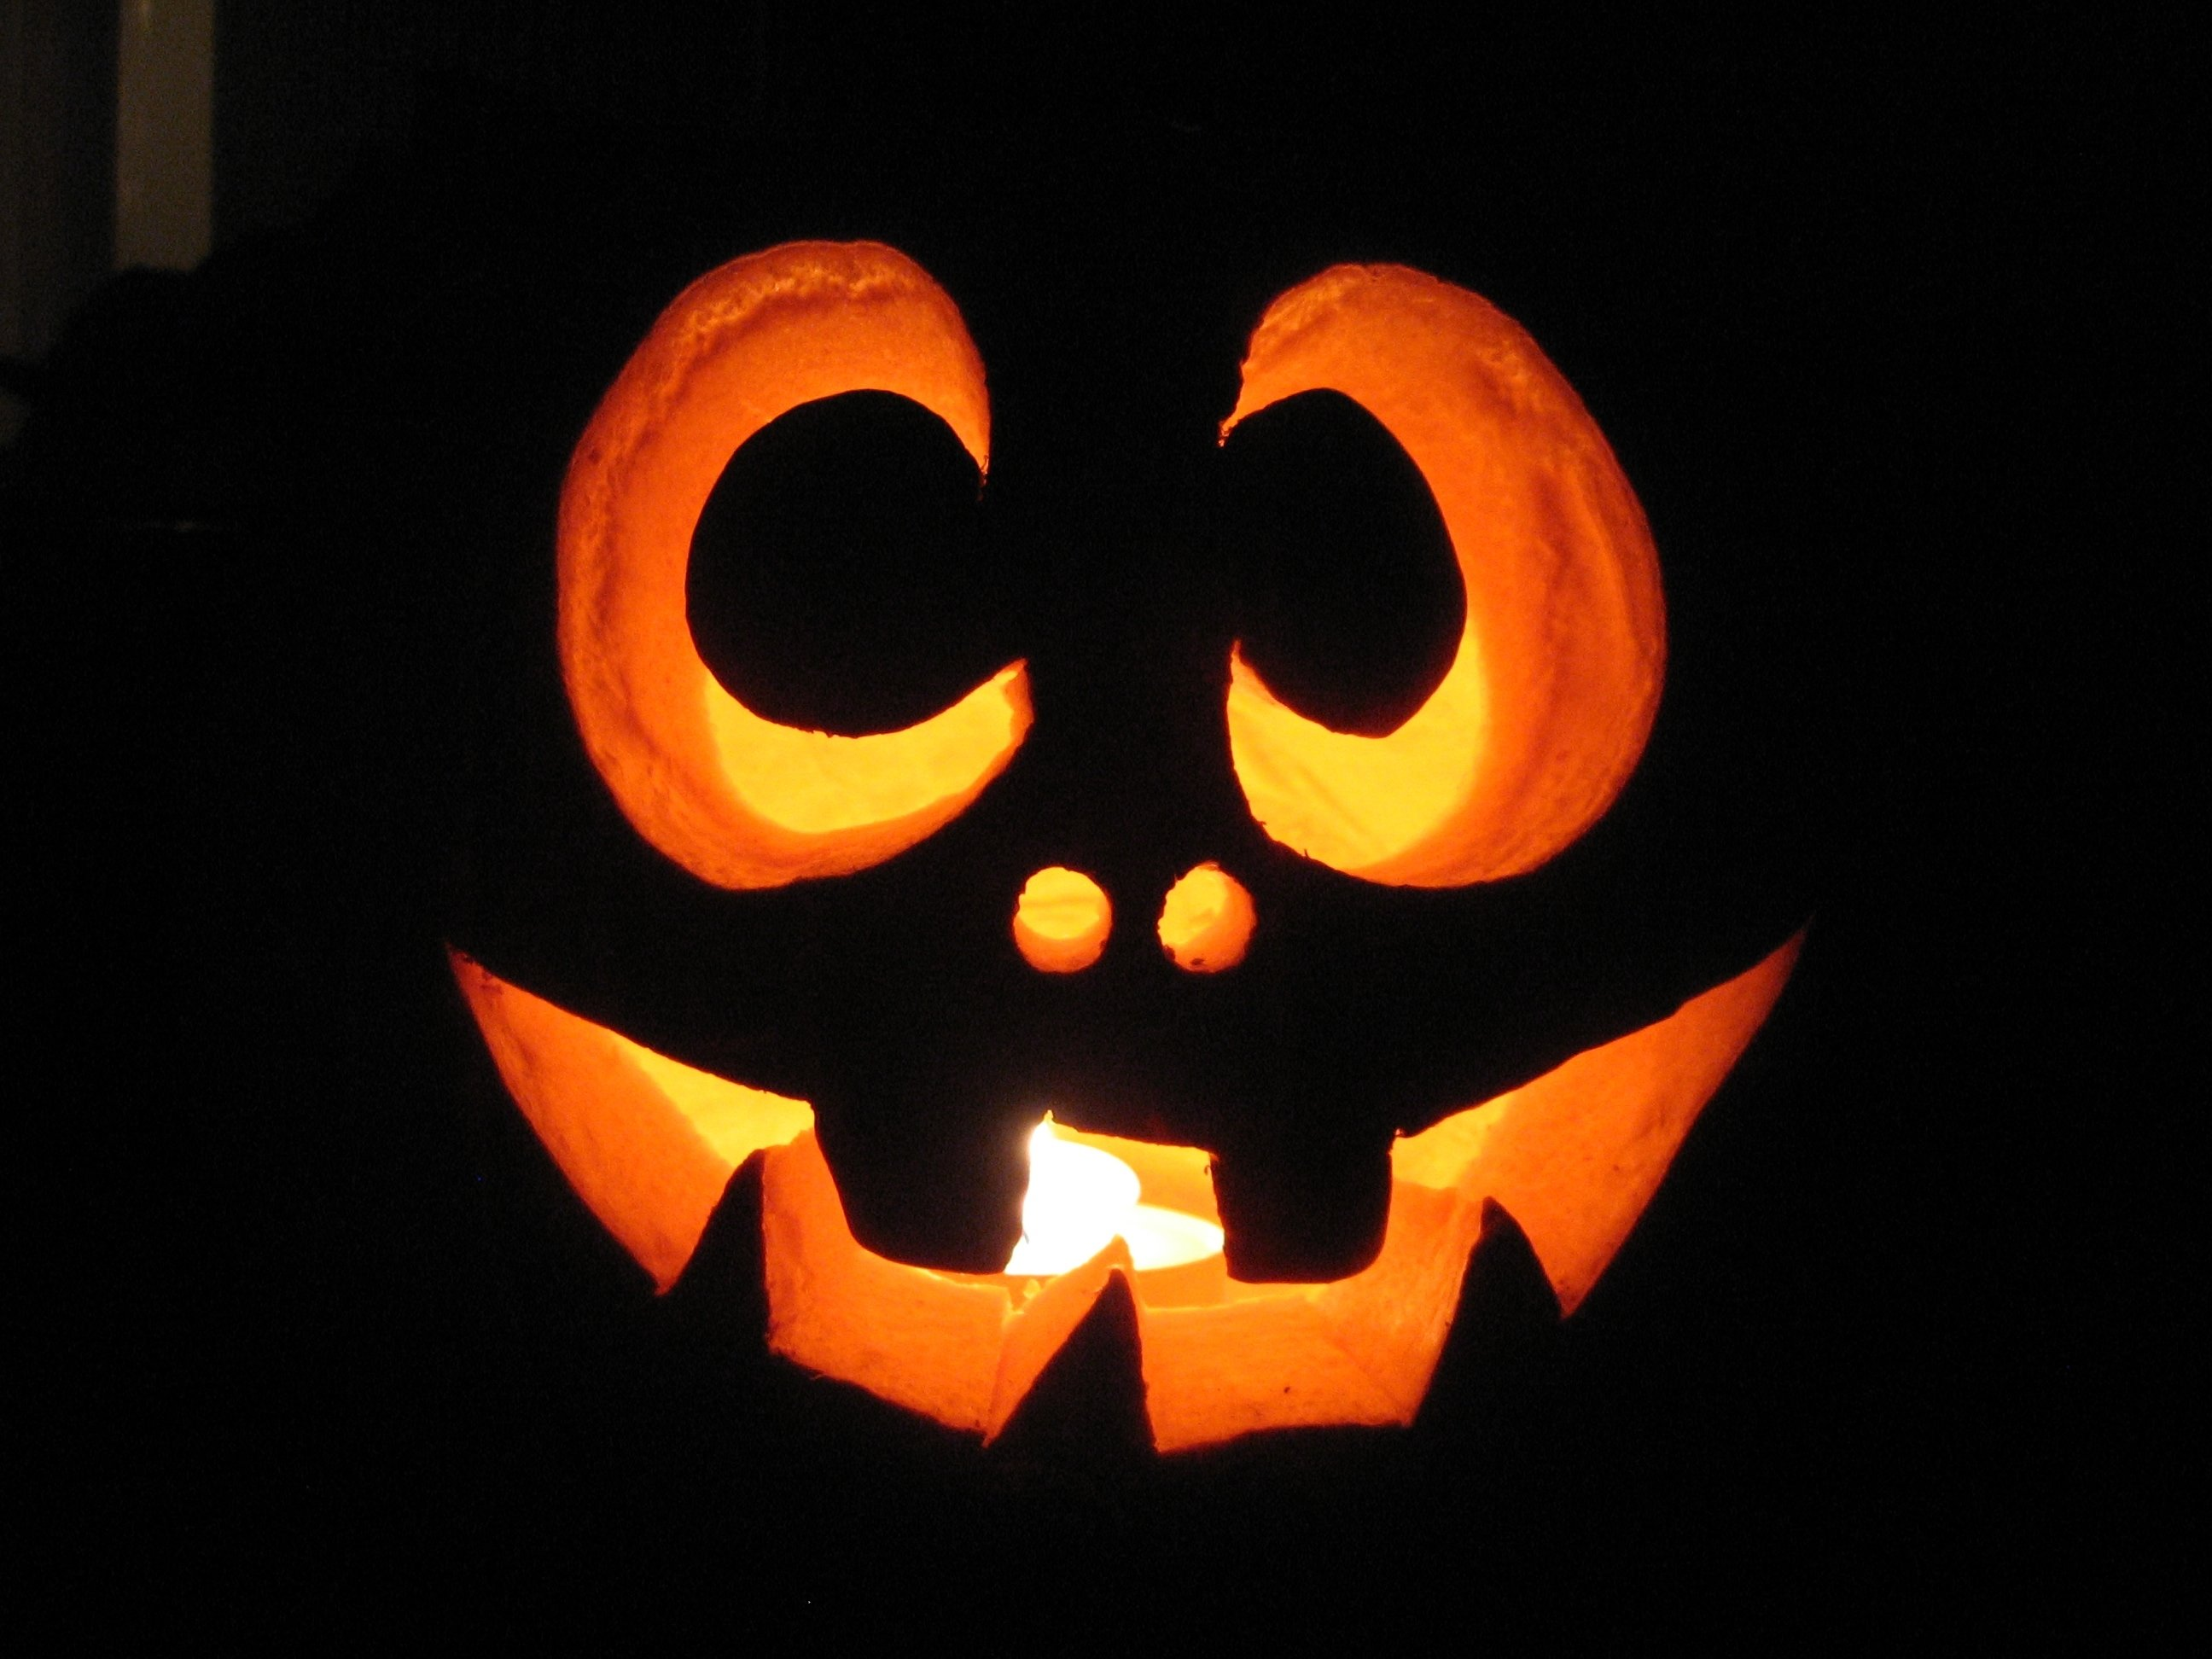 10 Amazing Awesome Jack O Lantern Ideas heal your open wound pumpkin mouth pumpkin carving and pumpkin 8 2020